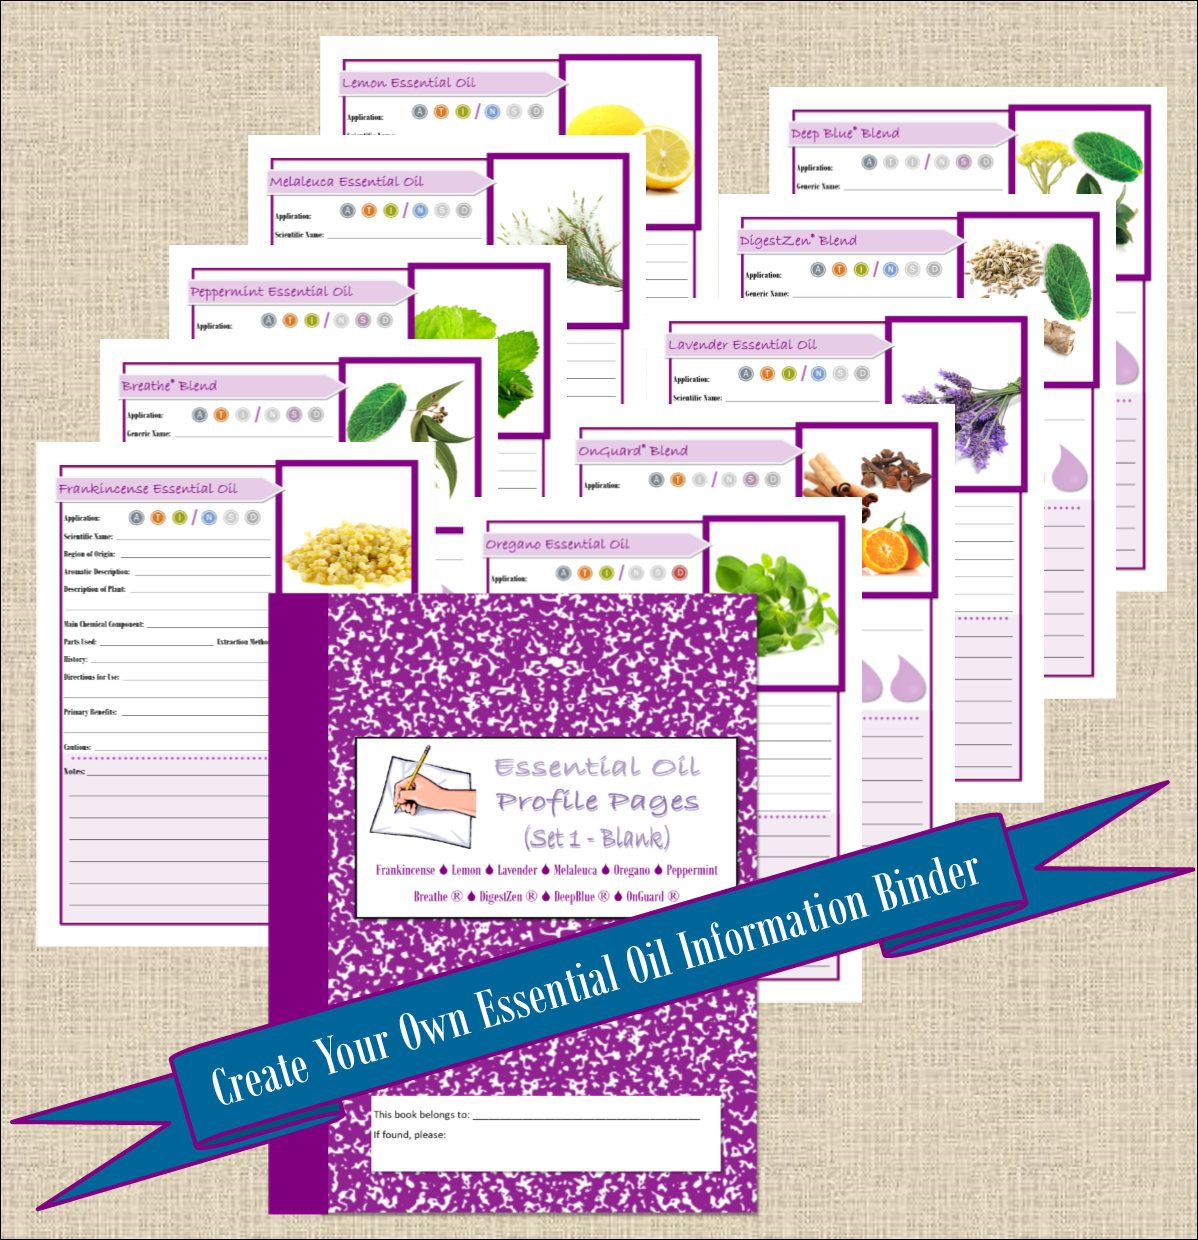 Doterra Blank Top Essential Oil Book Planner Pages